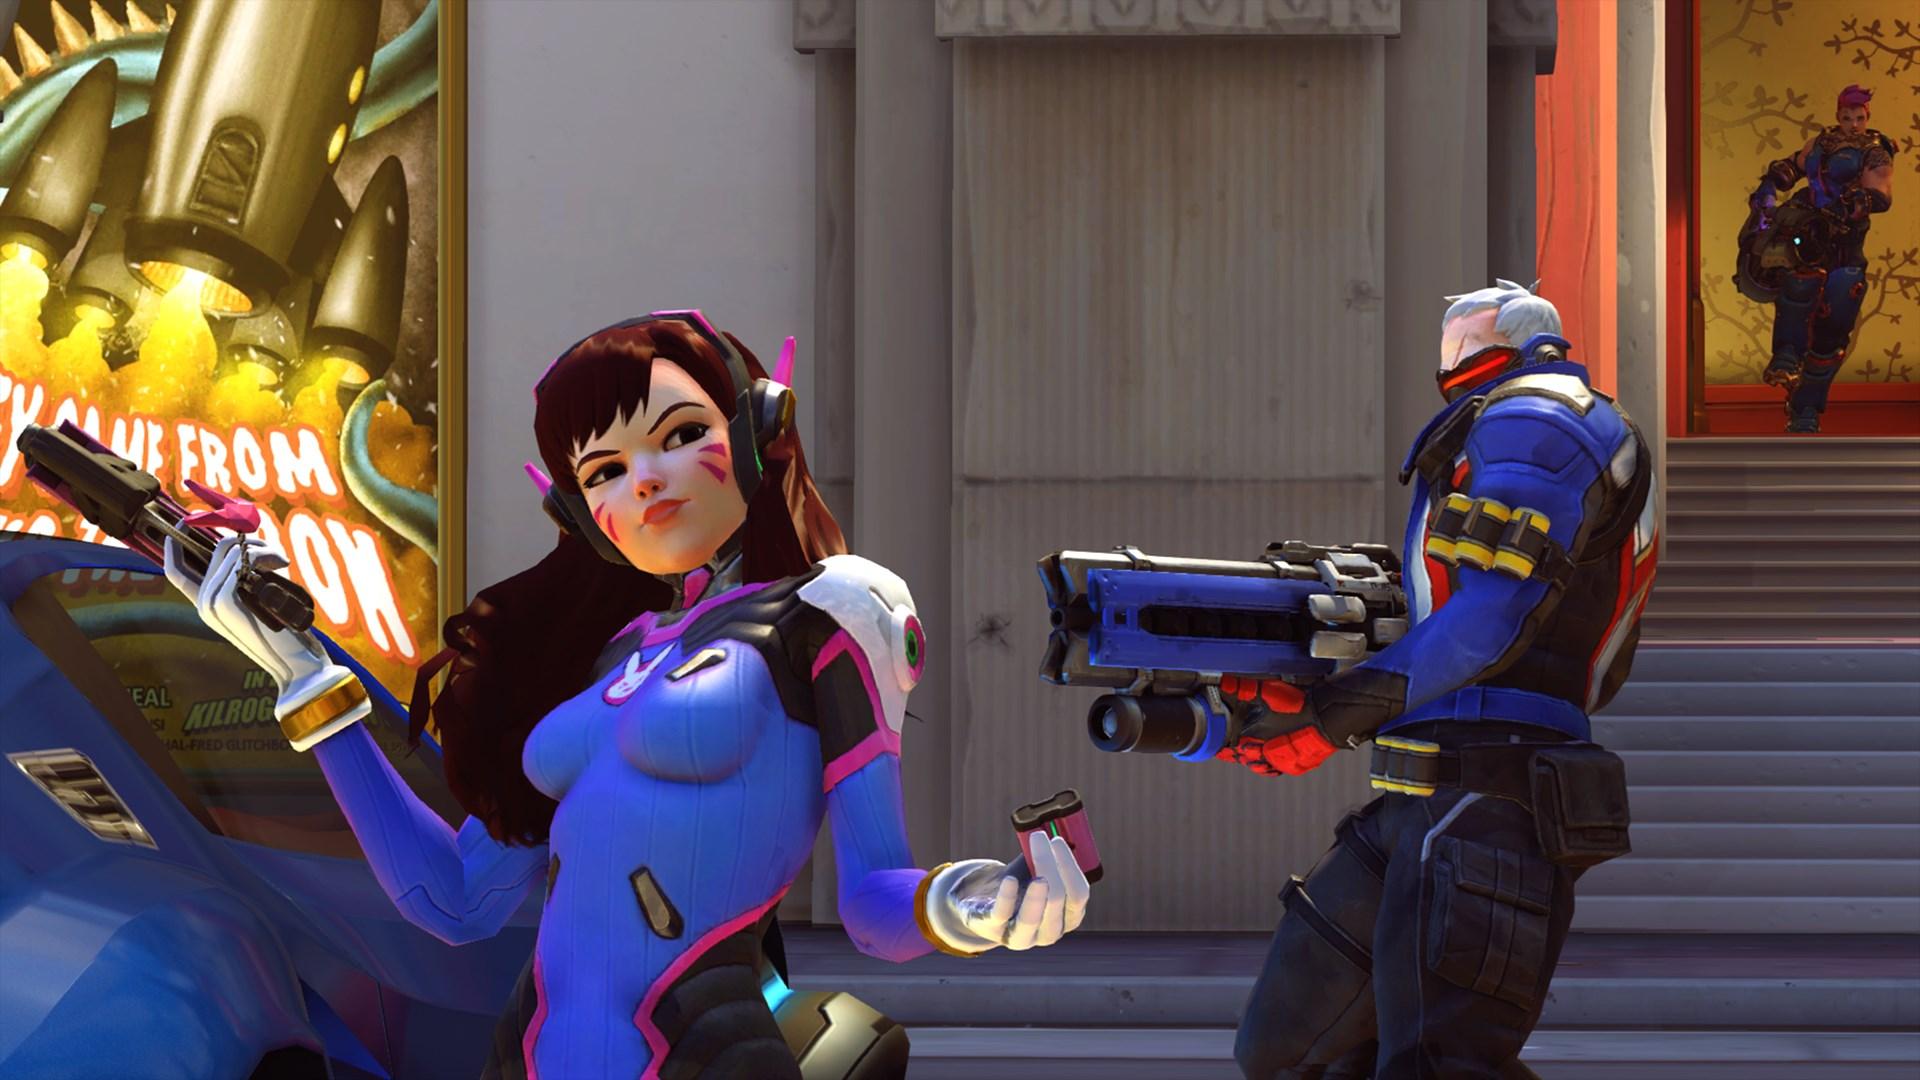 Soldier 76 aiming at D.Va in Overwatch